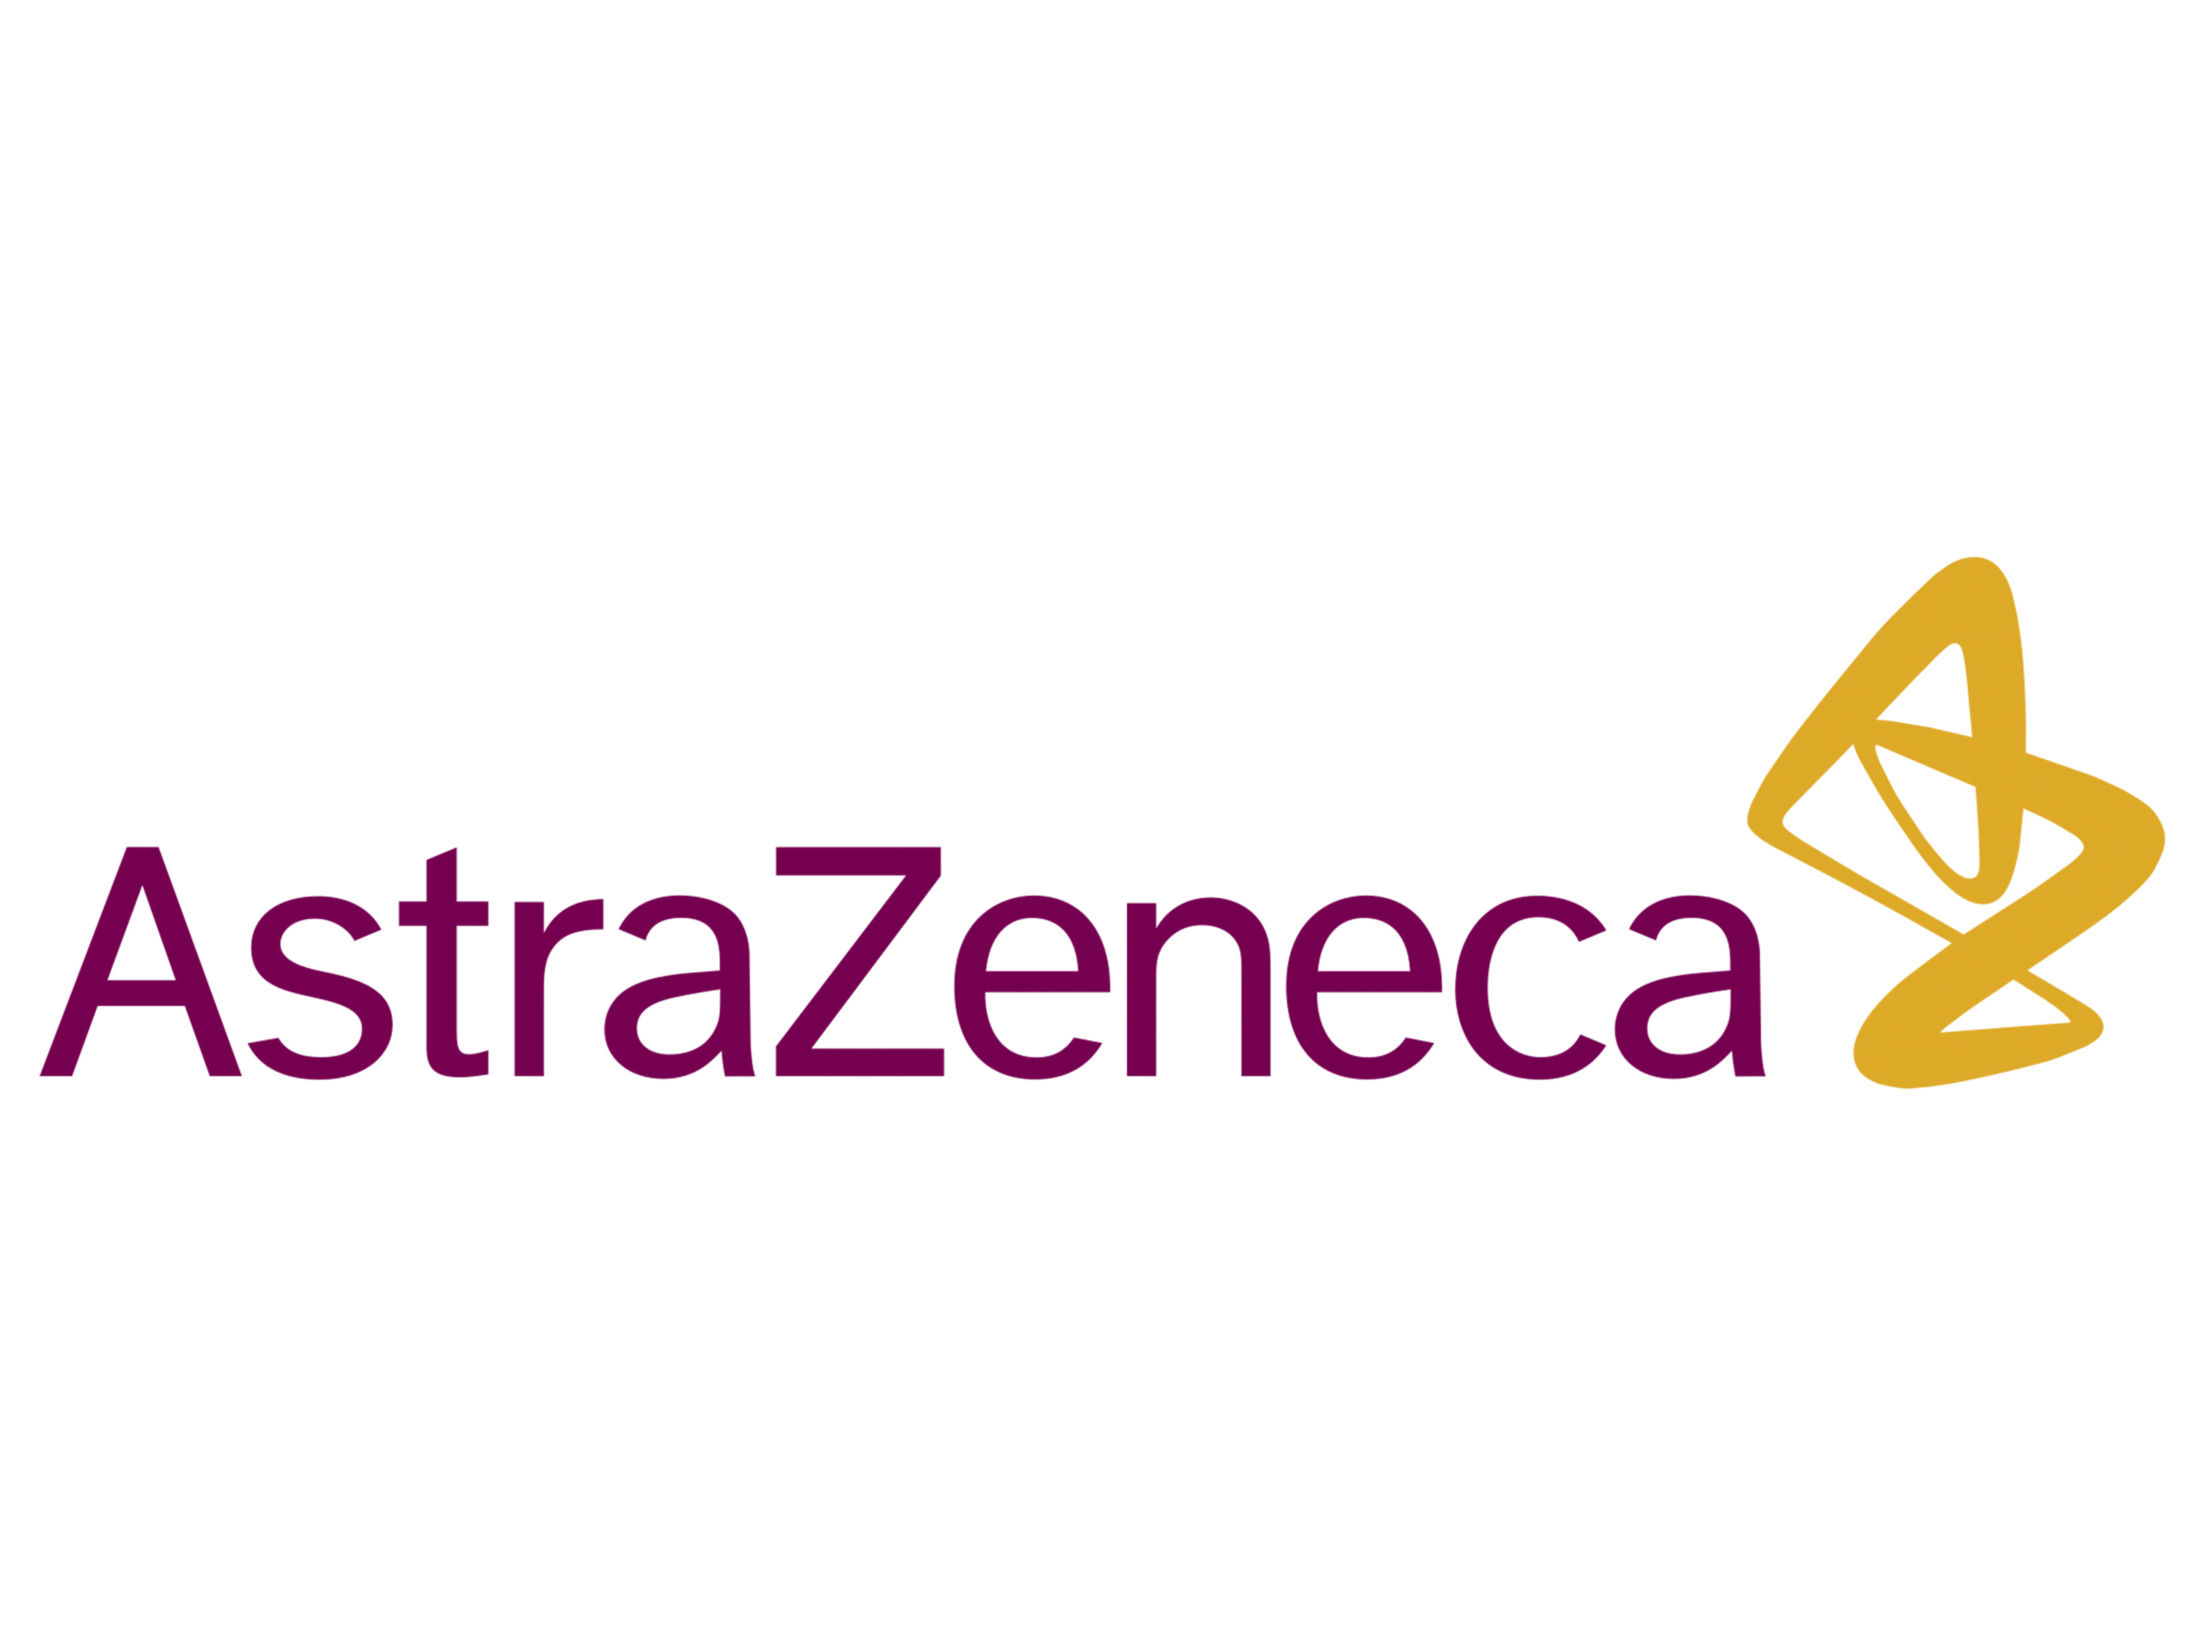 AstraZeneca - MedImmune Team Building Review